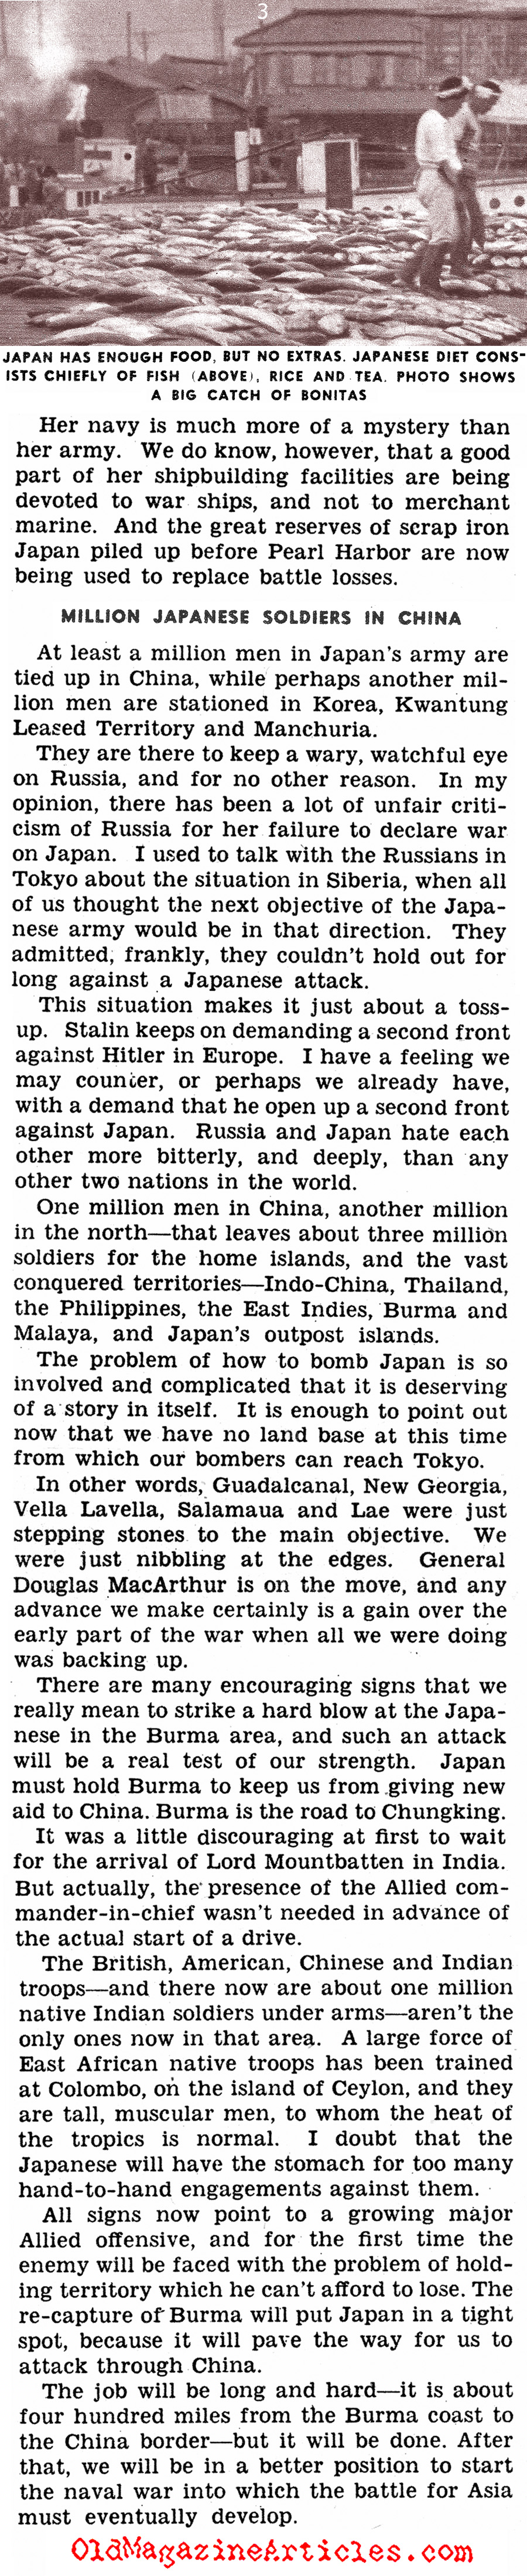 When Japan Went on the Defensive (Click Magazine, 1943)